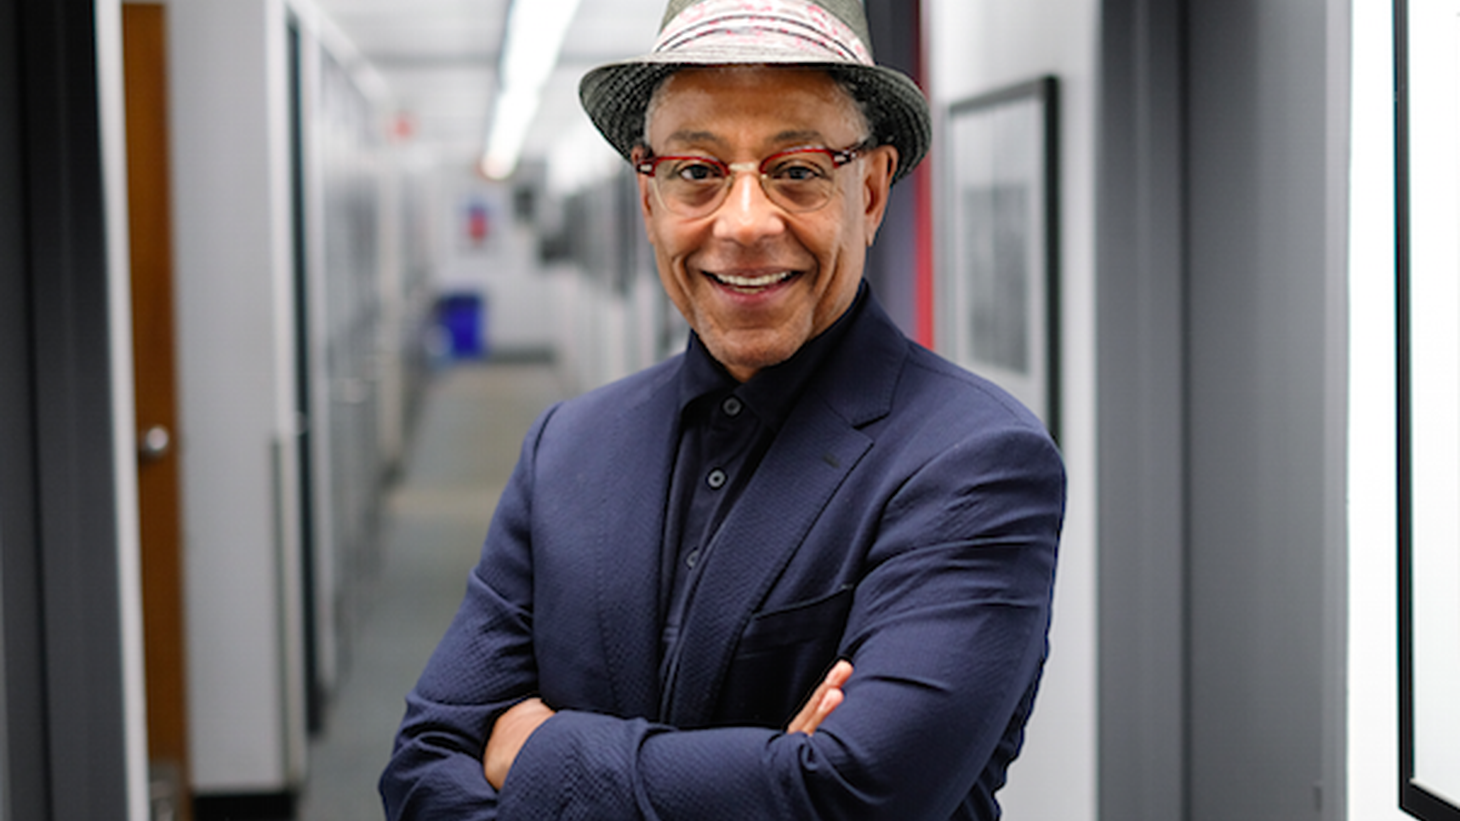 """Giancarlo Esposito plays Gus Fring on """"Better Call Saul"""" and its much beloved predecessor """"Breaking Bad."""" Fring is Albuquerque's favorite fried chicken magnate and a ruthless crystal meth kingpin."""